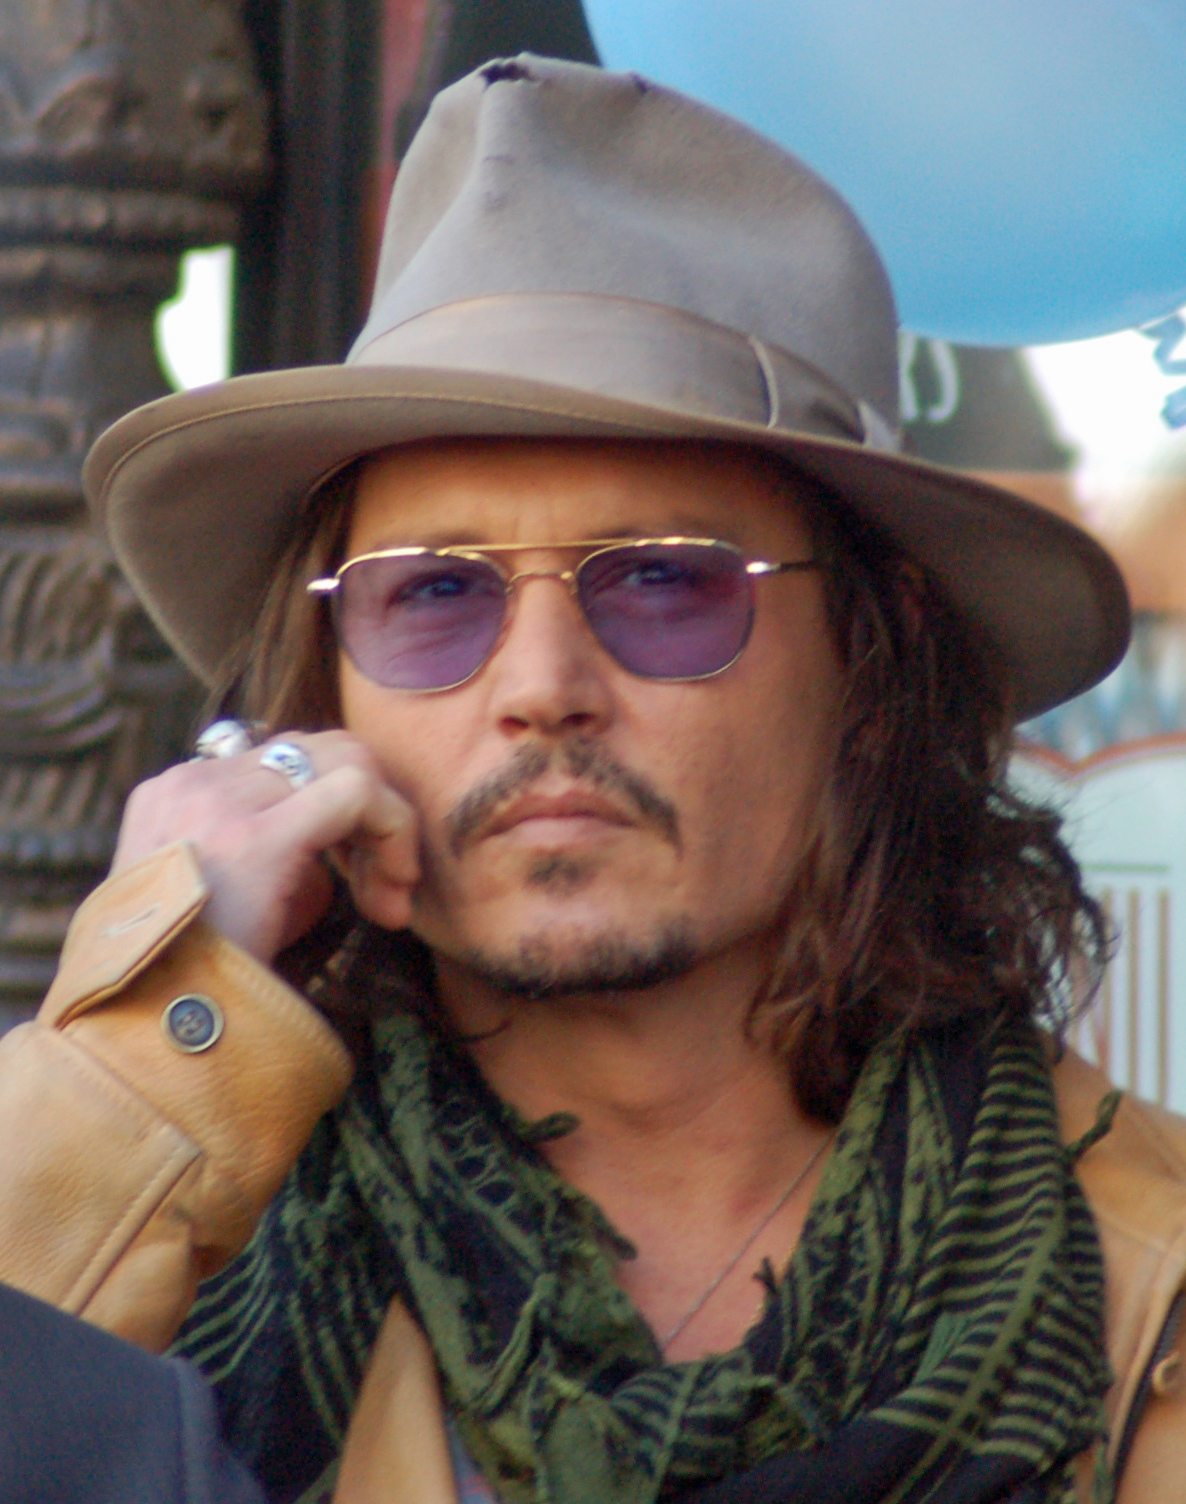 Johnny Depp - Wikiquote